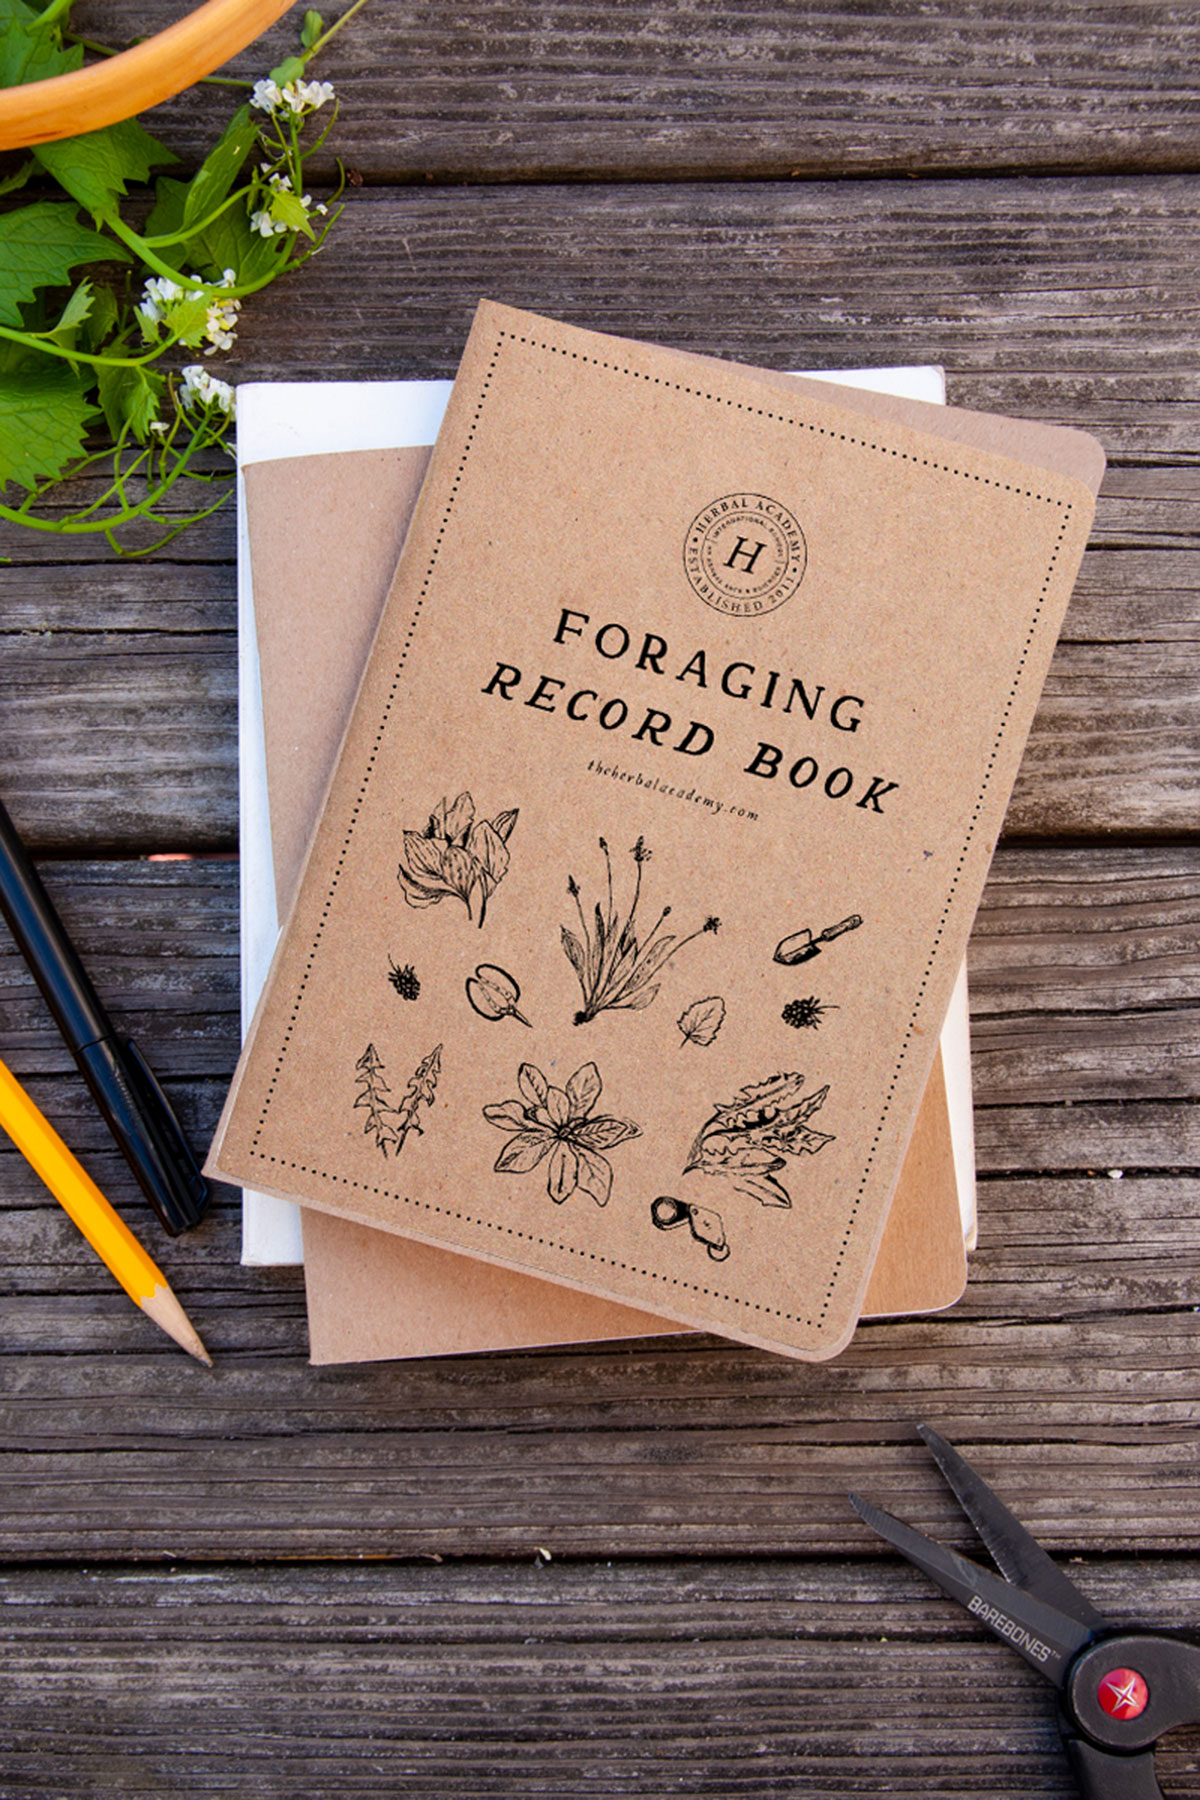 Foraging record book Herbal Academy